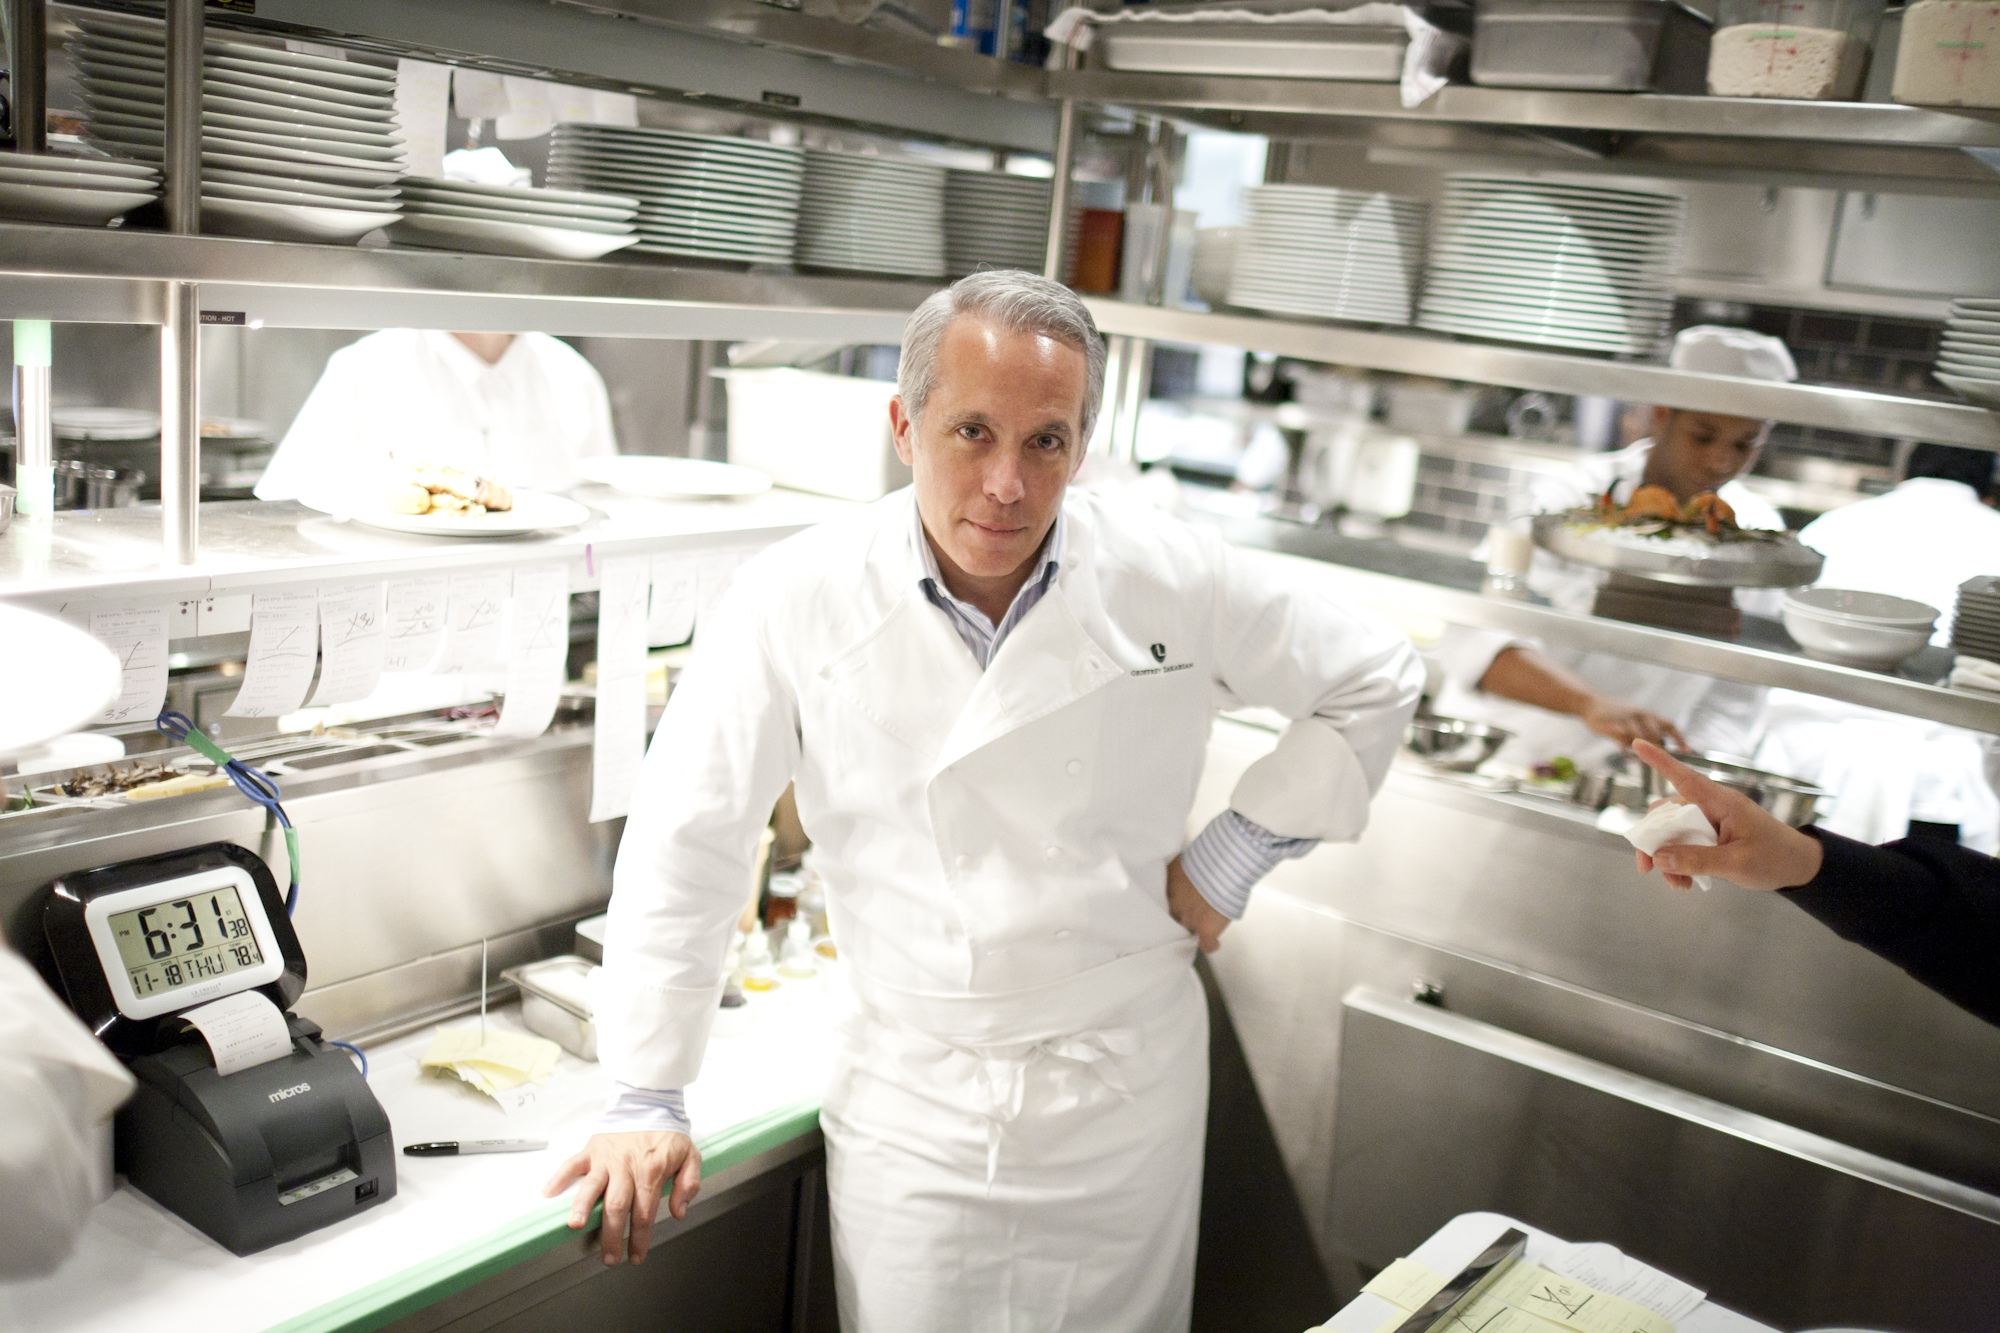 Celebrity chef Geoffrey Zakarian has the honor of being the first-ever host of Dan's Harvest East End (image: geoffrey zakarian)